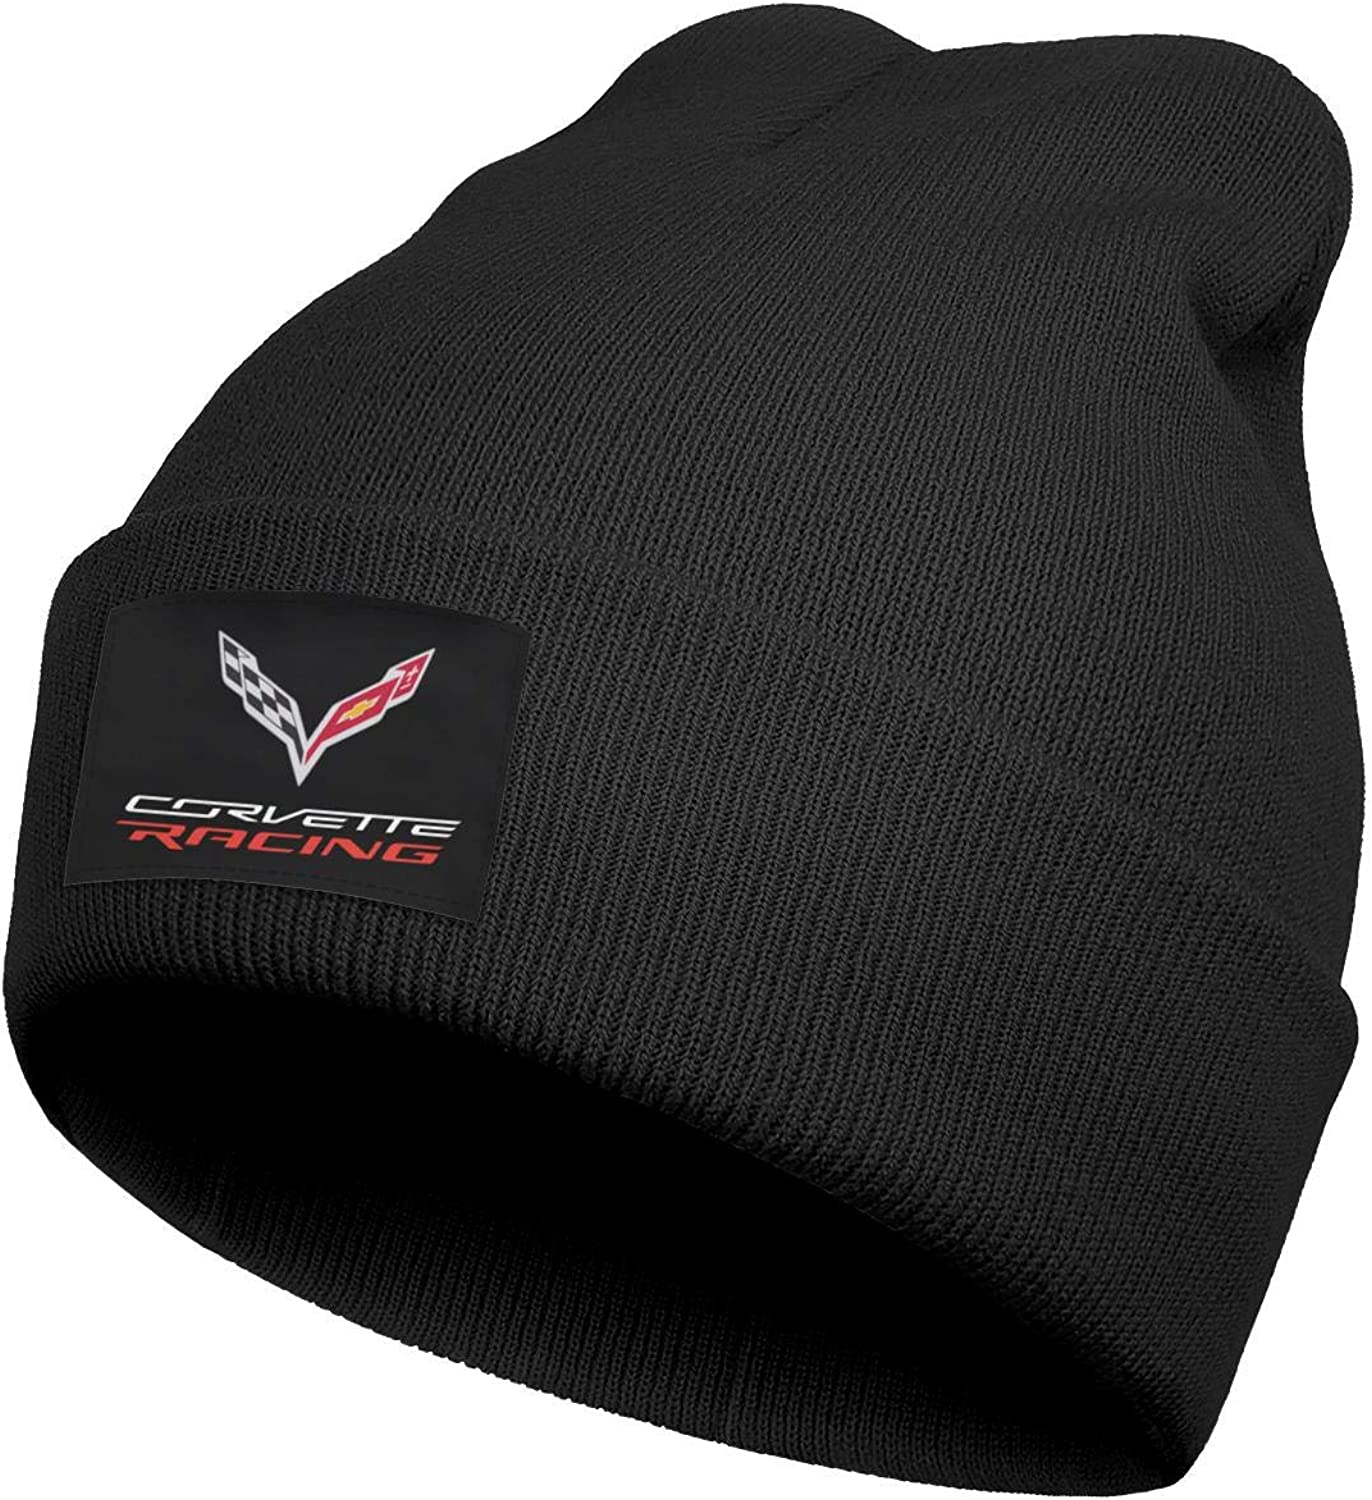 Vicnen Corvette Apparel Racing Logo Unisex Skull Cap Winter Warm Hood Cap Beanie Hat Black